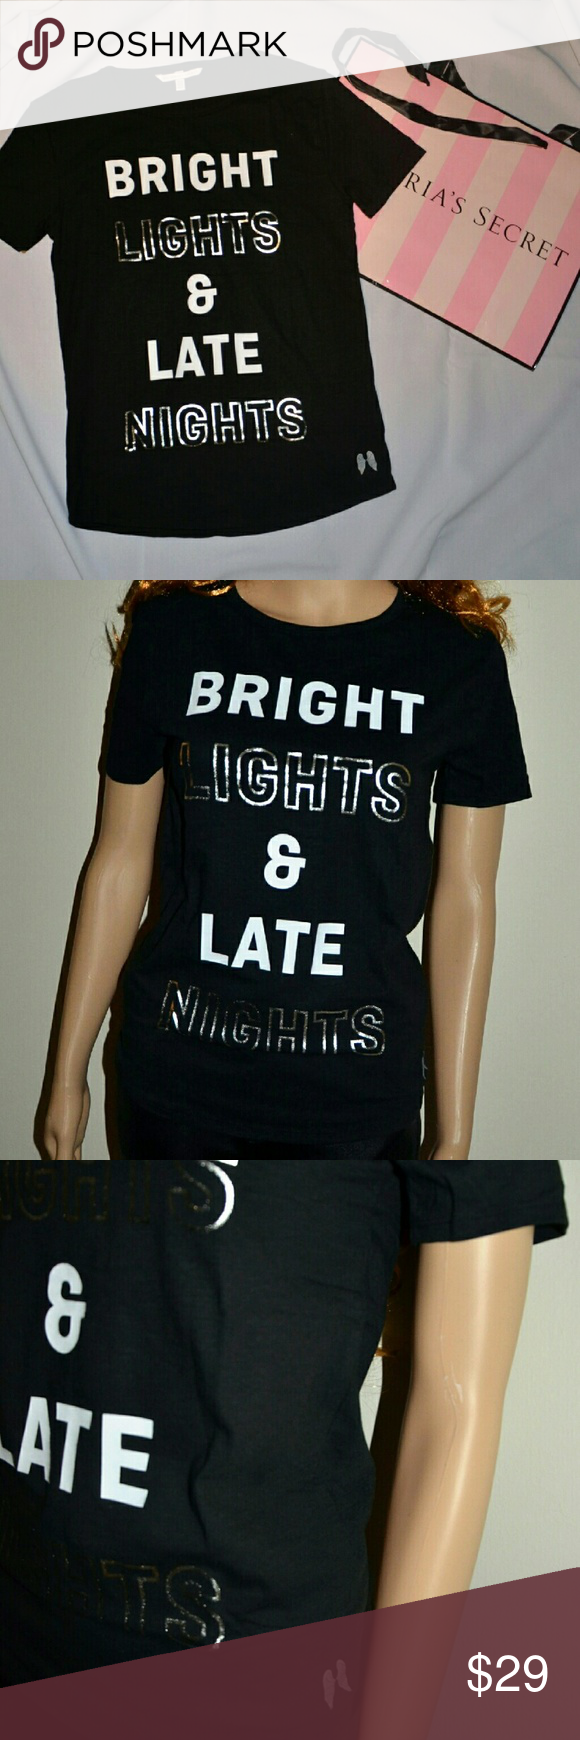 New VS Bright Lights and Late Nights T-Shirt Very soft and comfortable statement t-shirt Victoria's Secret Tops Tees - Short Sleeve